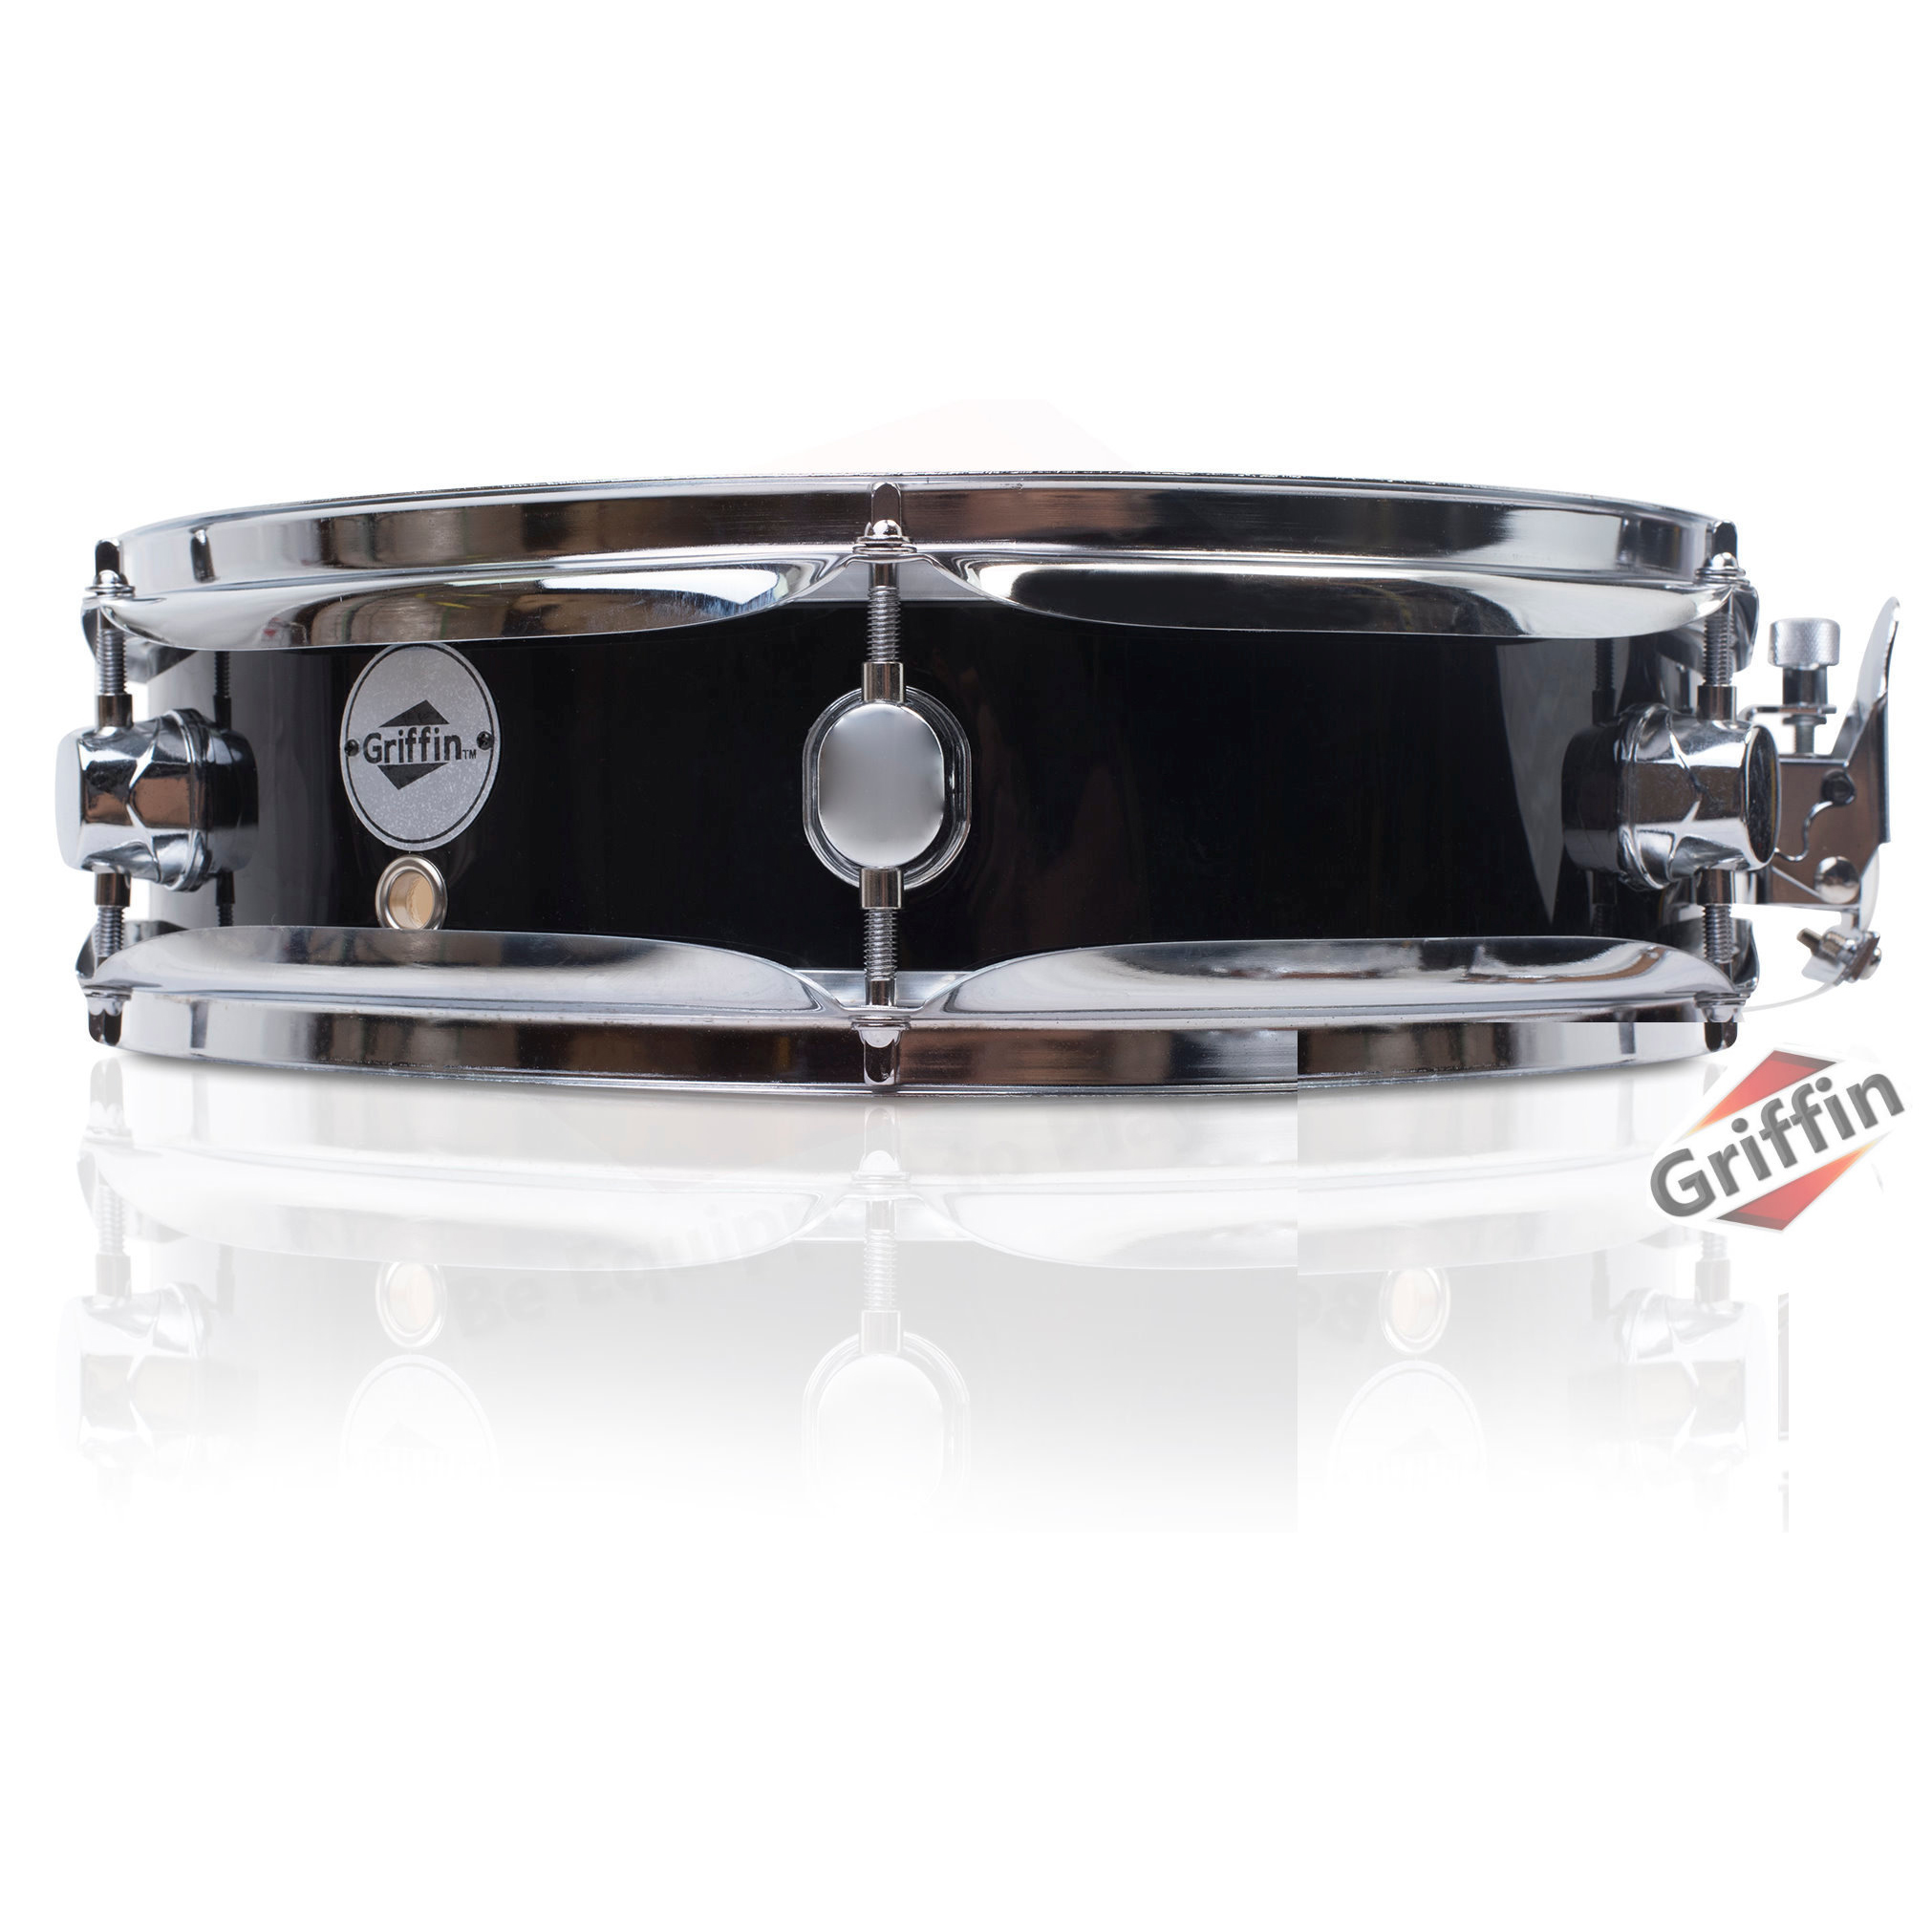 "Piccolo Snare Drum Black Wood Shell 13"" x 3.5"" Griffin"